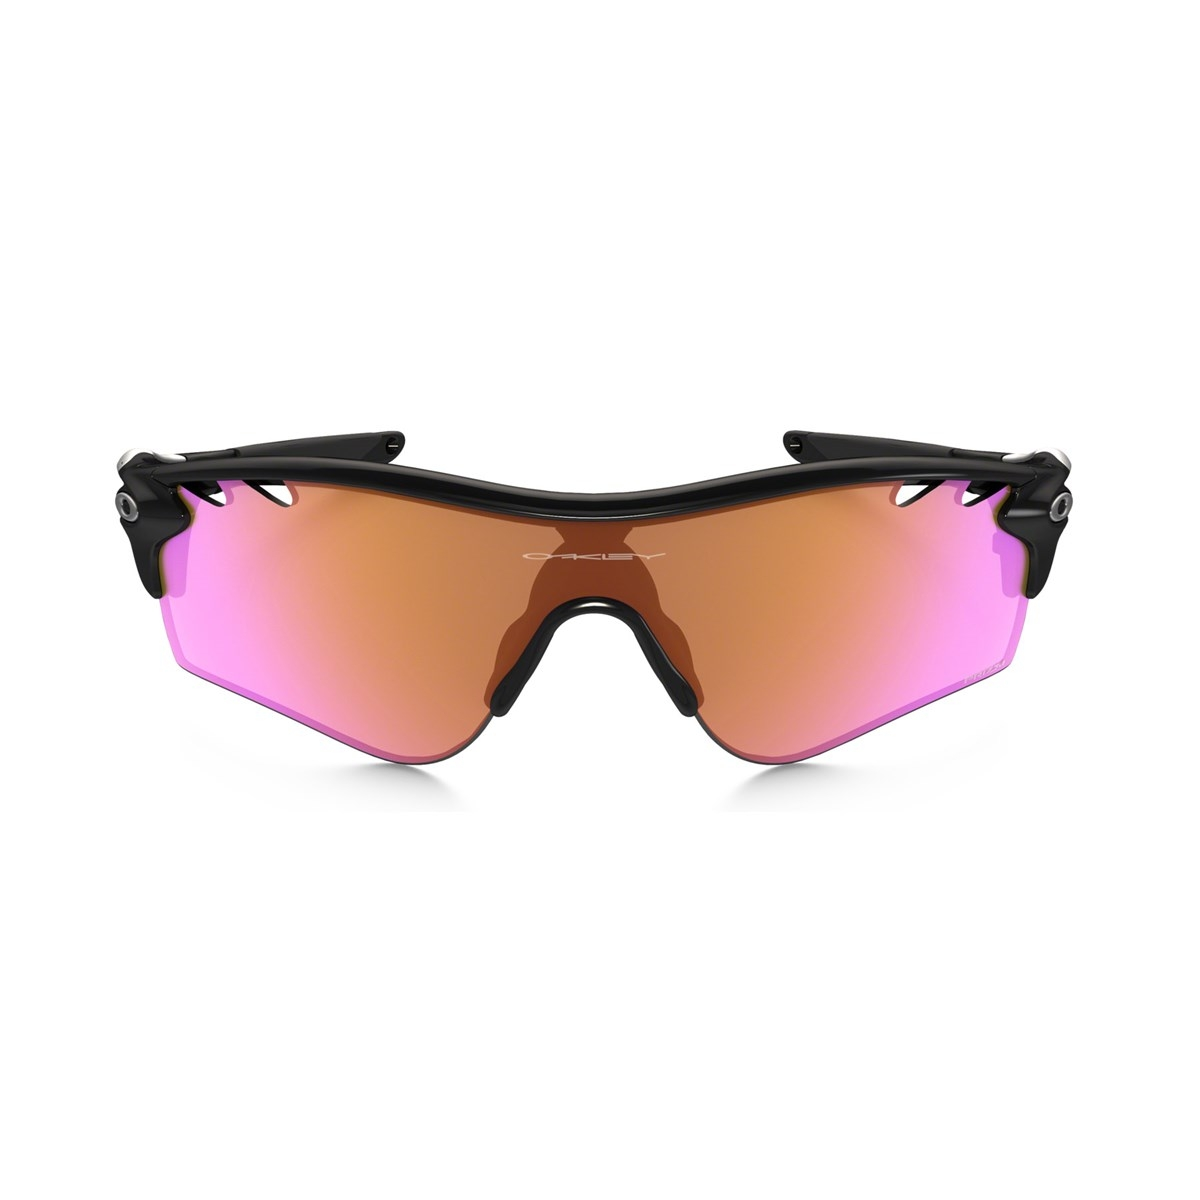 01e2a26e22 ... Image of Oakley Radarlock Path Men s Sunglasses - Polished Black    Prizm Trail   Clear